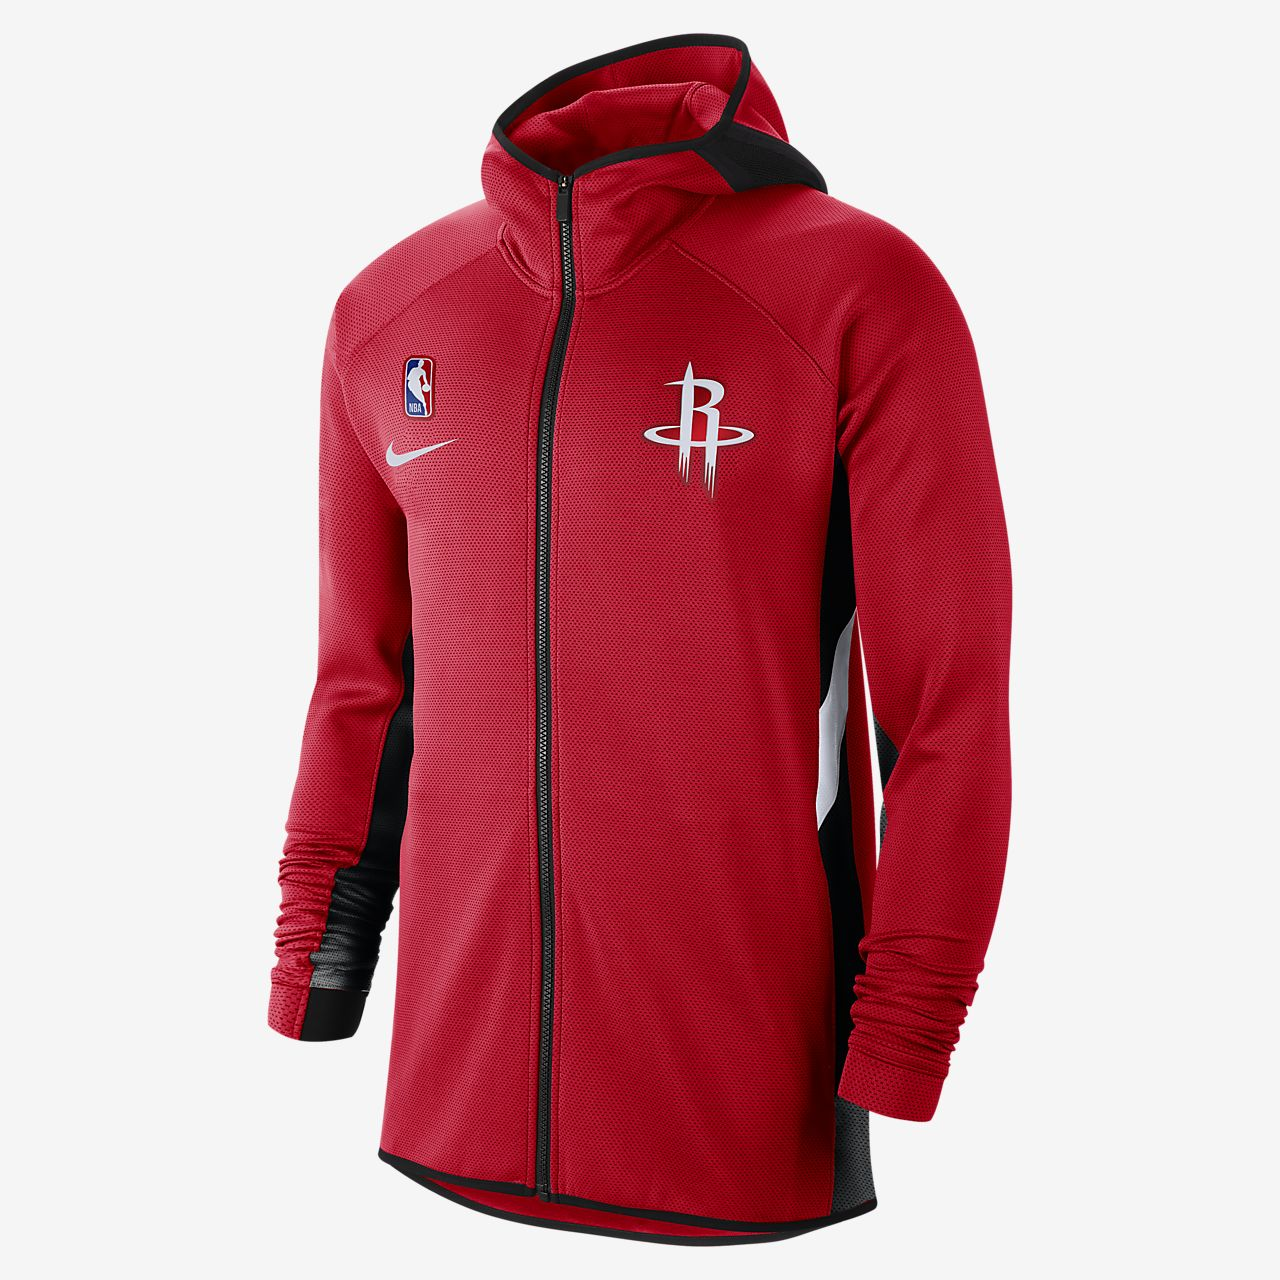 Do you like the Nike thermaflex hoodie designs for the NBA